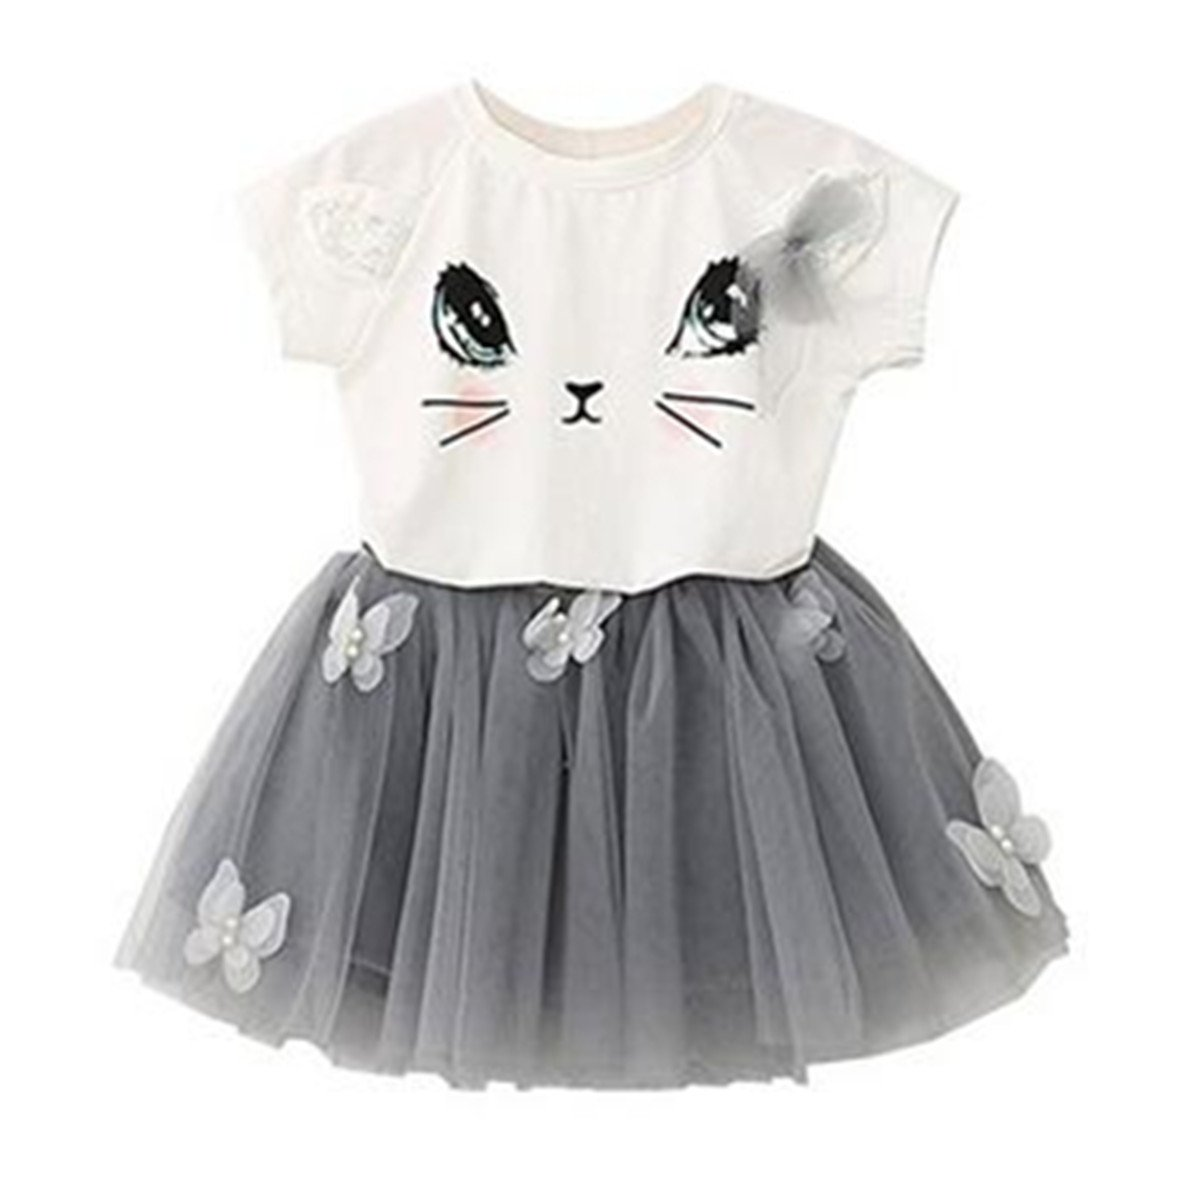 Puseky Baby Girl Cute Cat T-shirt + Butterfly Mesh Bubble Skirt Kids Clothes Set (1-2 Years, White+Grey)